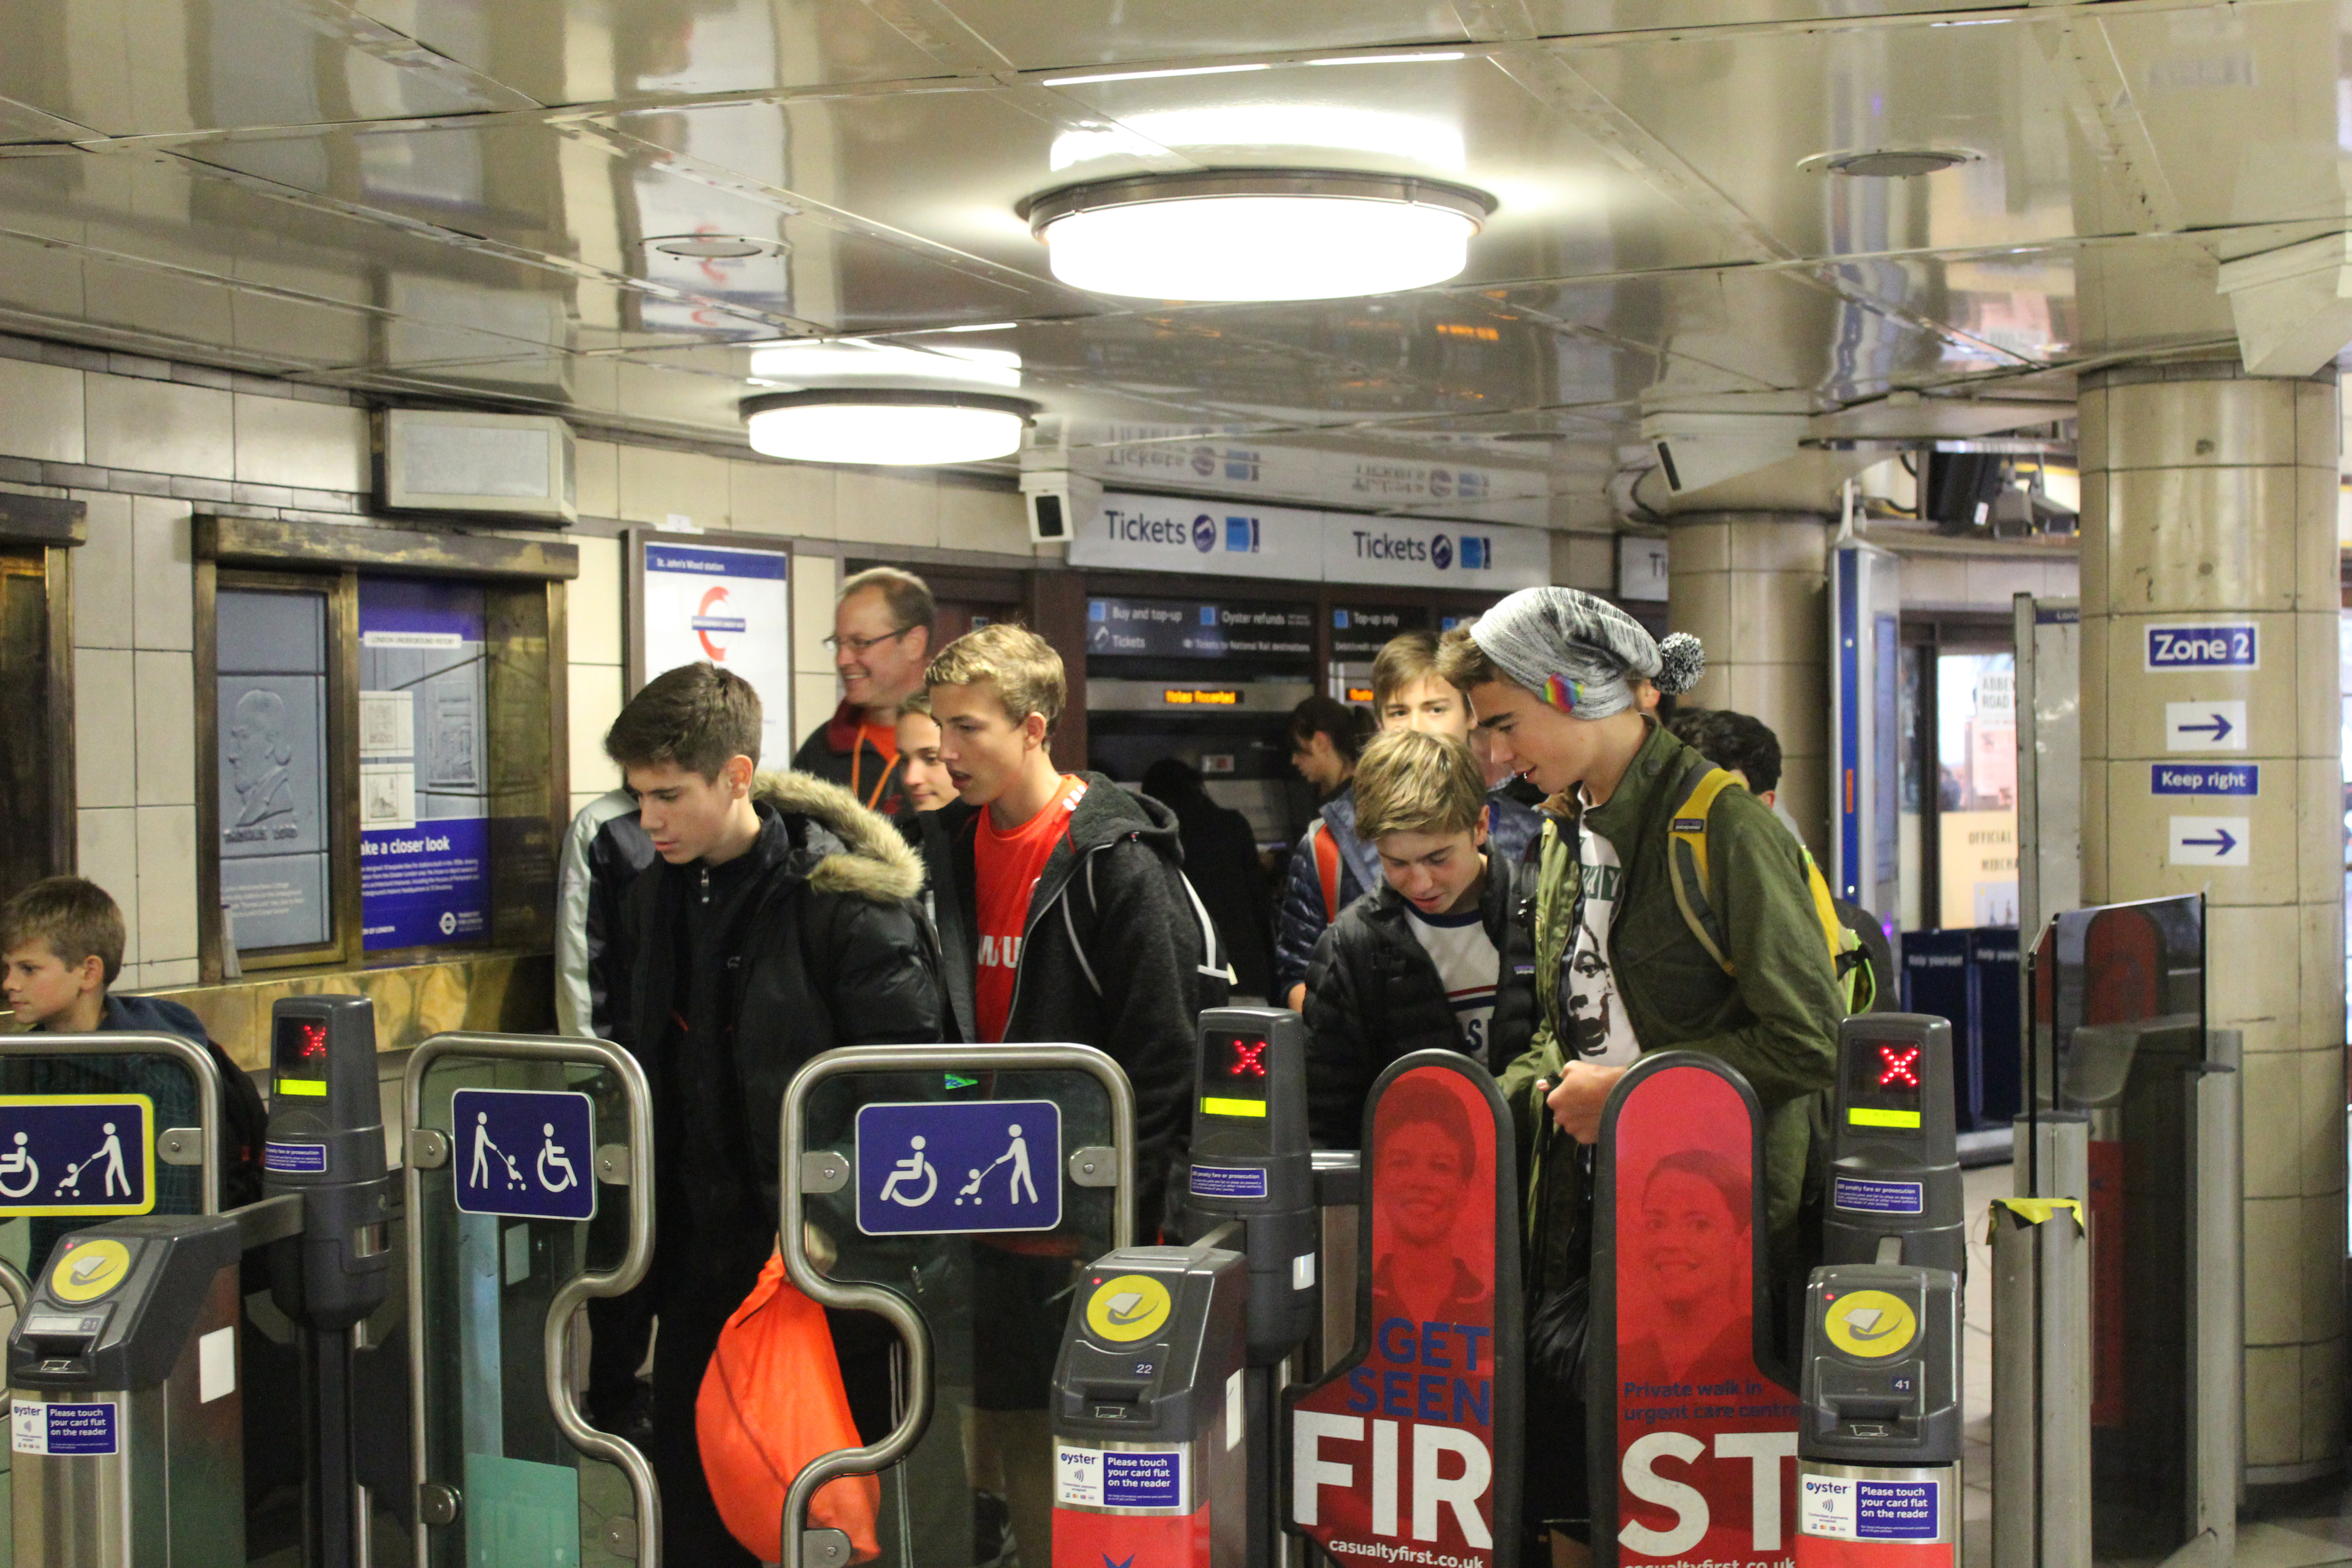 Travel transition from bus to tube